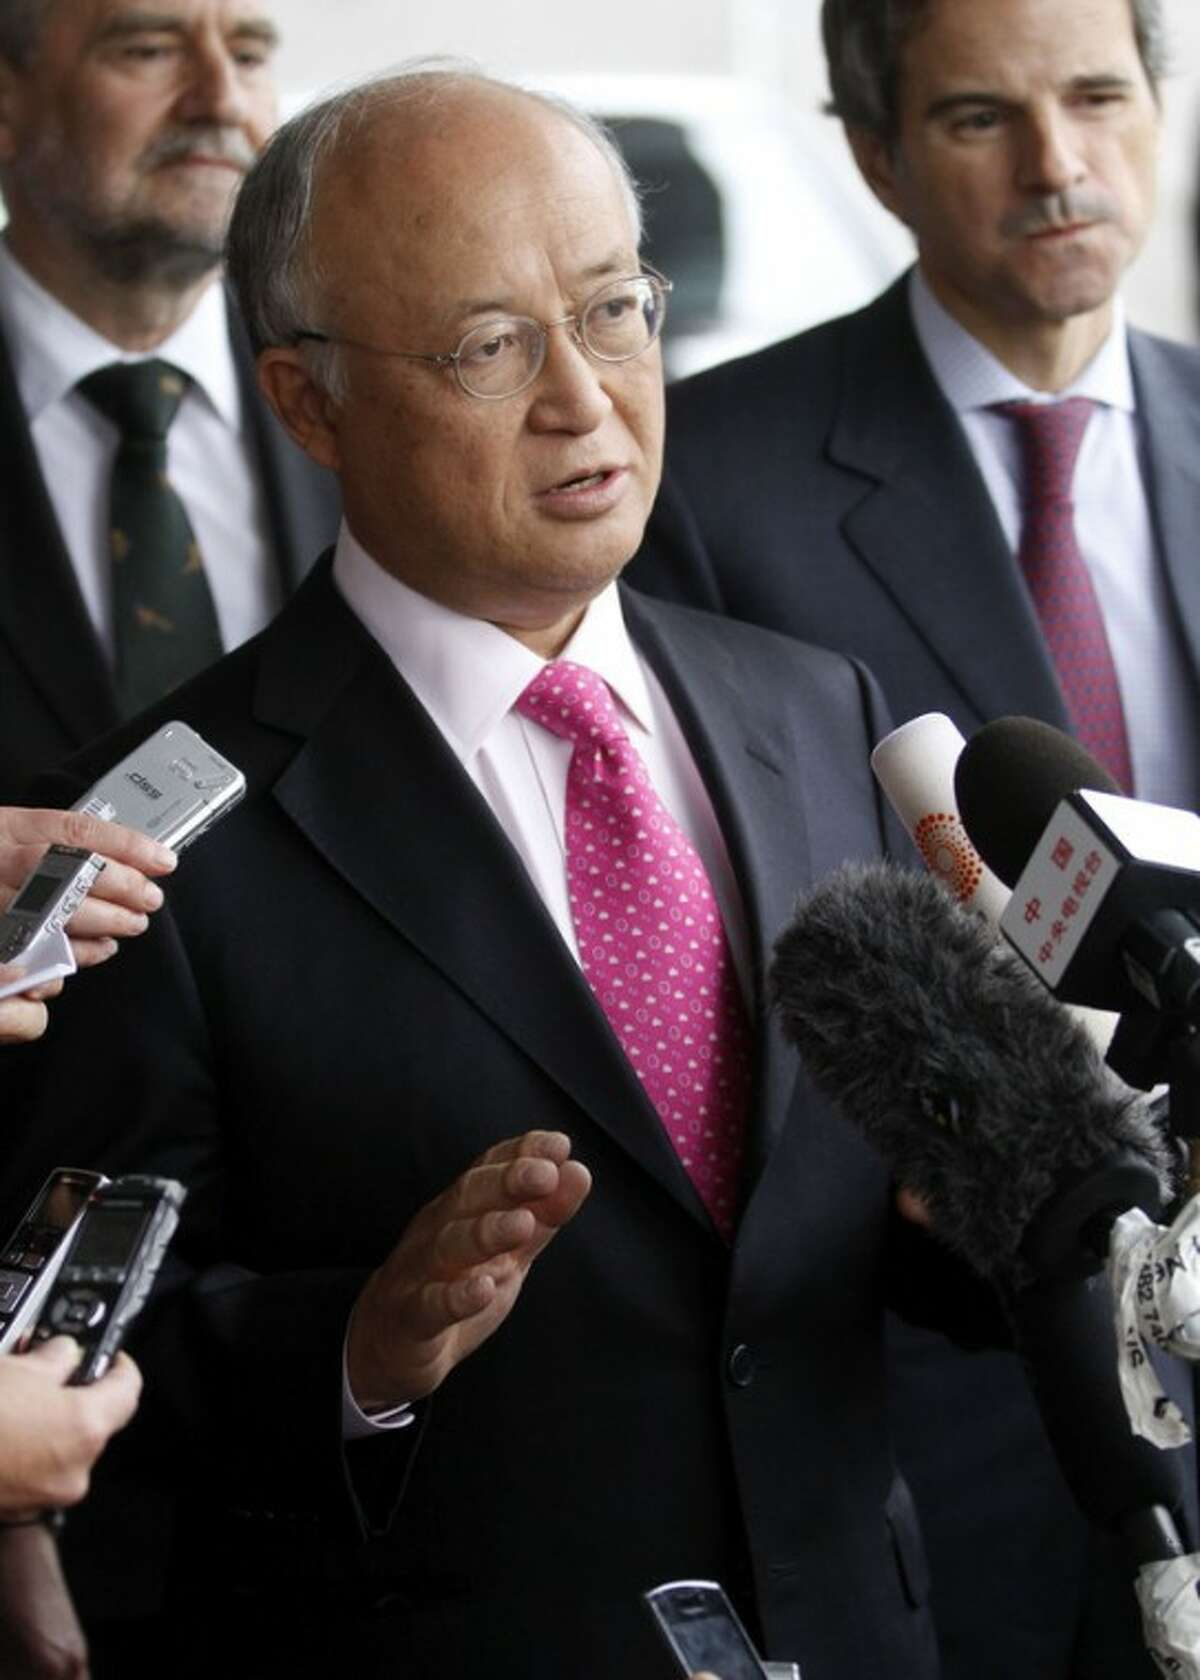 Director General of the International Atomic Energy Agency, IAEA, Yukiya Amano from Japan speaks to the media after returning from Iran at the Vienna International Airport near Schwechat, Austria, on Tuesday, May 22, 2012. Amano says he has reached a deal with Iran on probing suspected work on nuclear weapons and adds that the agreement will